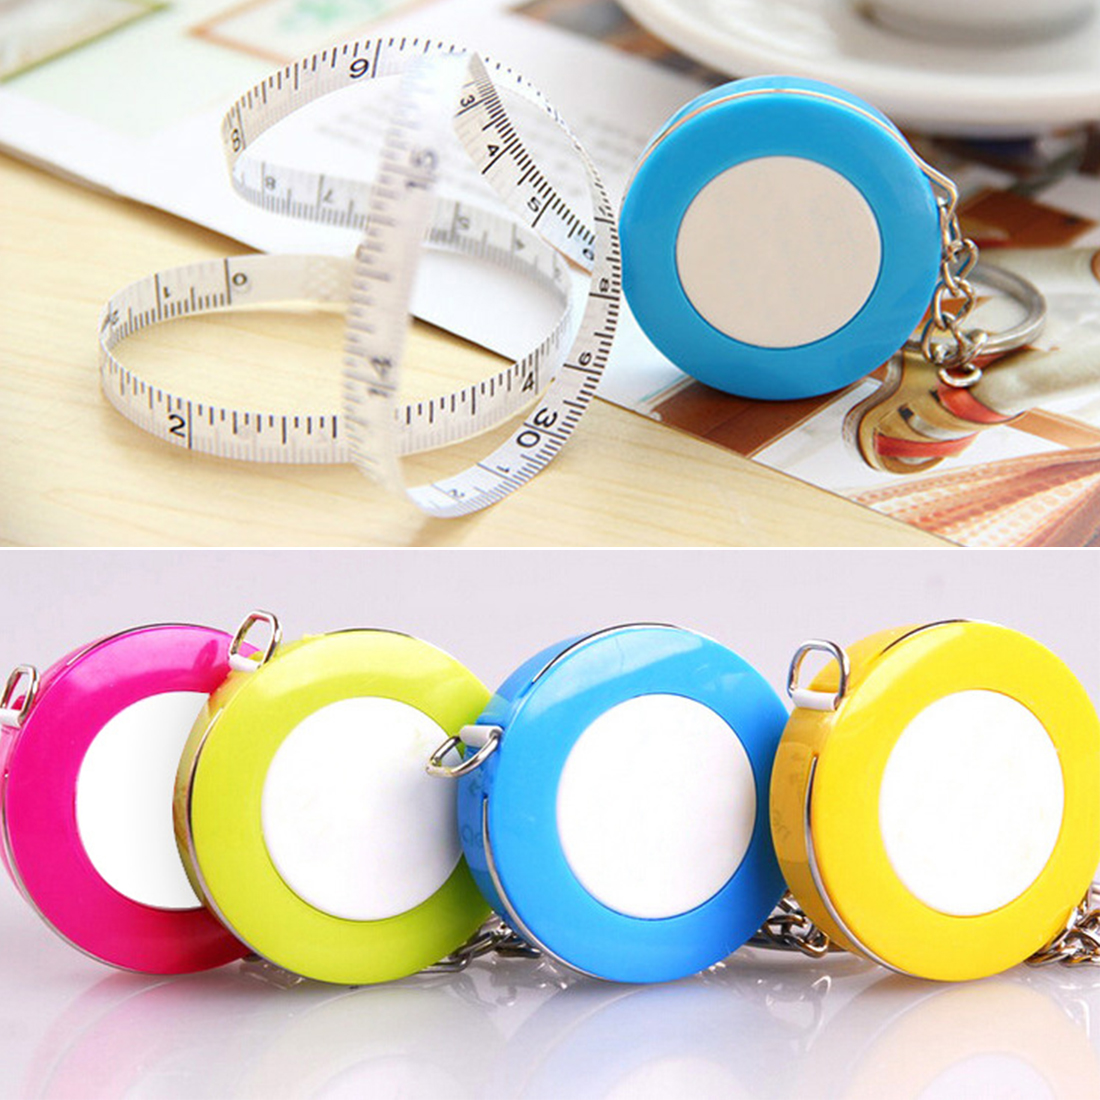 Mini Tape Measure Portable Retractable Ruler Candy Color Keychain Tape Measure 1.5 Meters Quantity Clothing Size